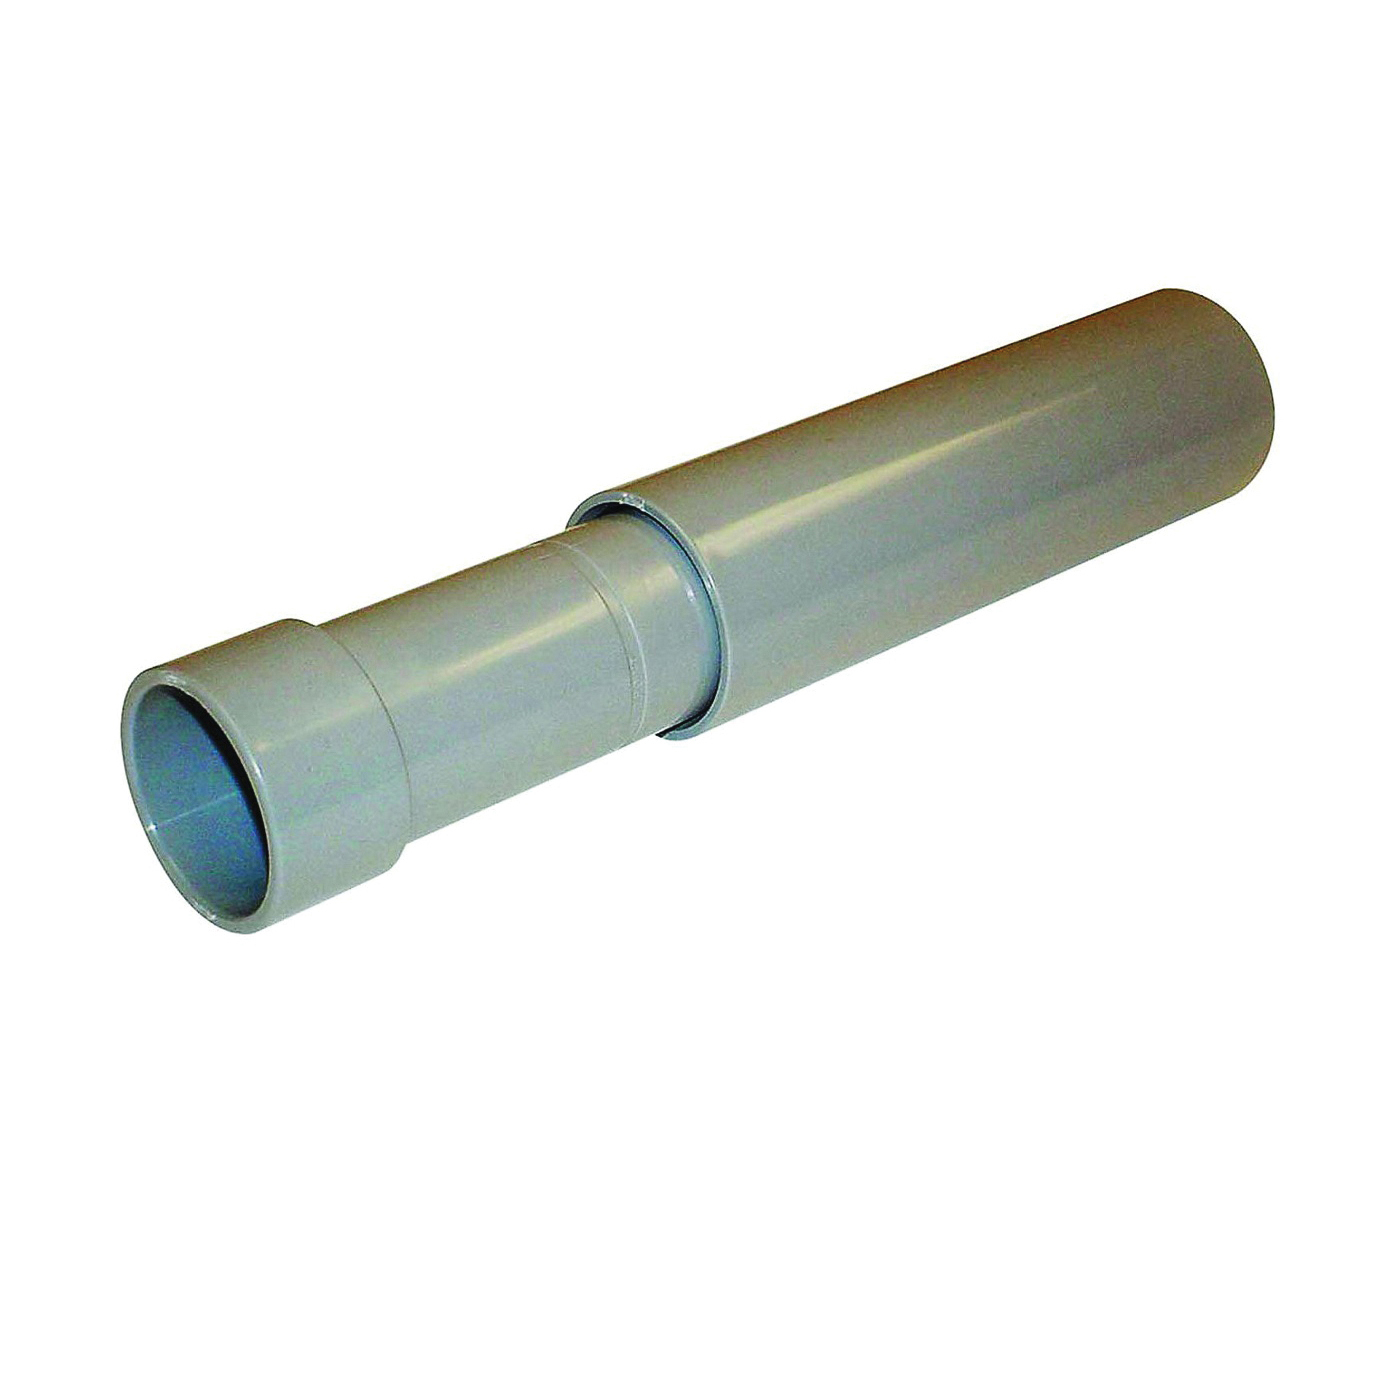 Picture of Carlon E945 Series E945D-CAR Expansion Coupling, 1/2 in Trade, Female Socket, 6 in L, PVC, Gray